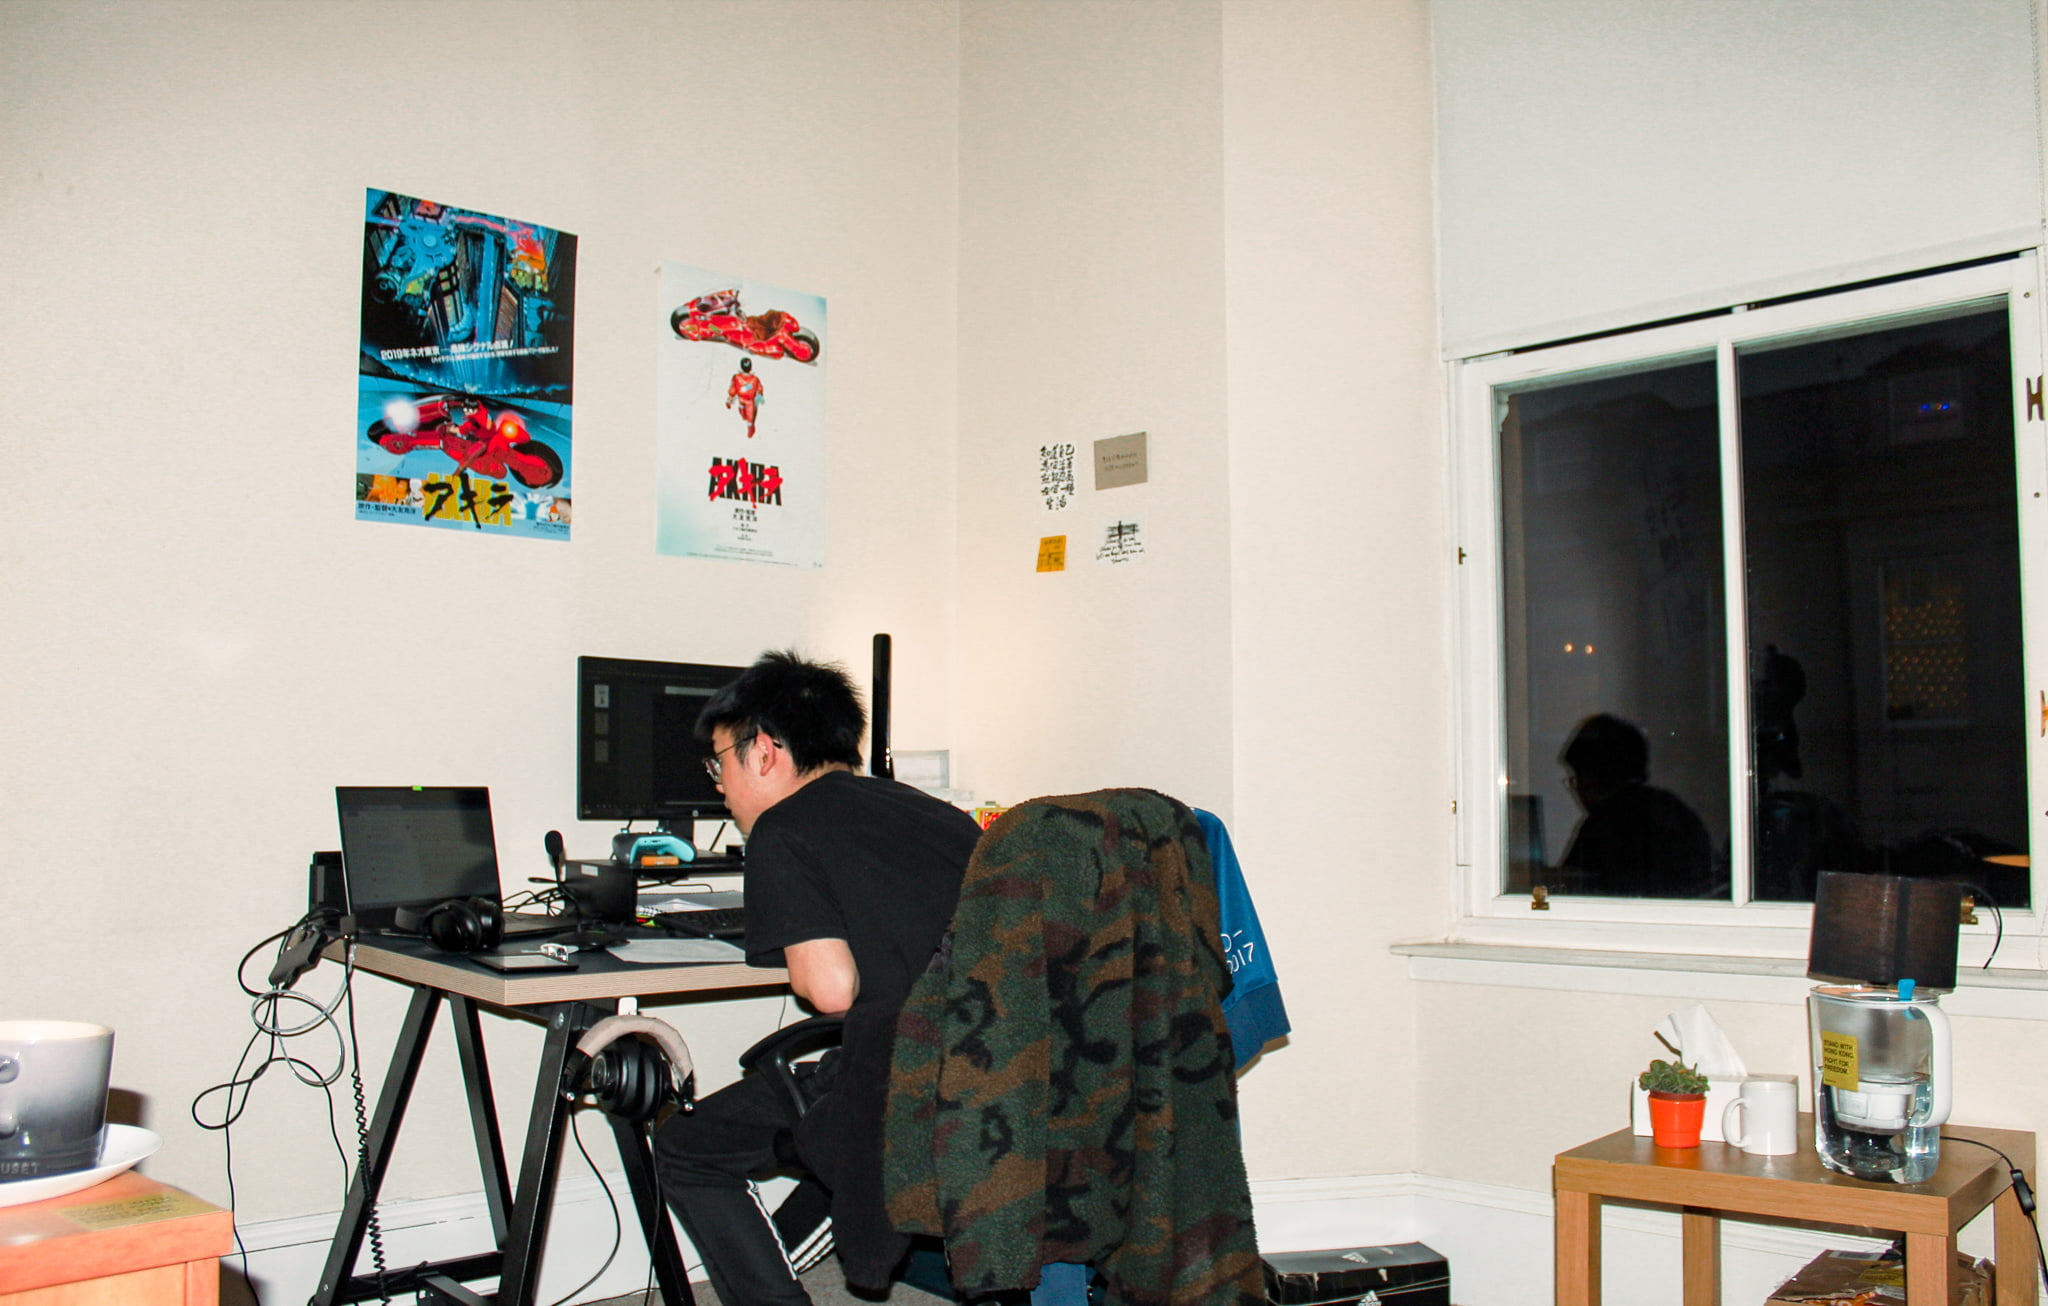 One Room, Our Home: The mental crisis plaguing students